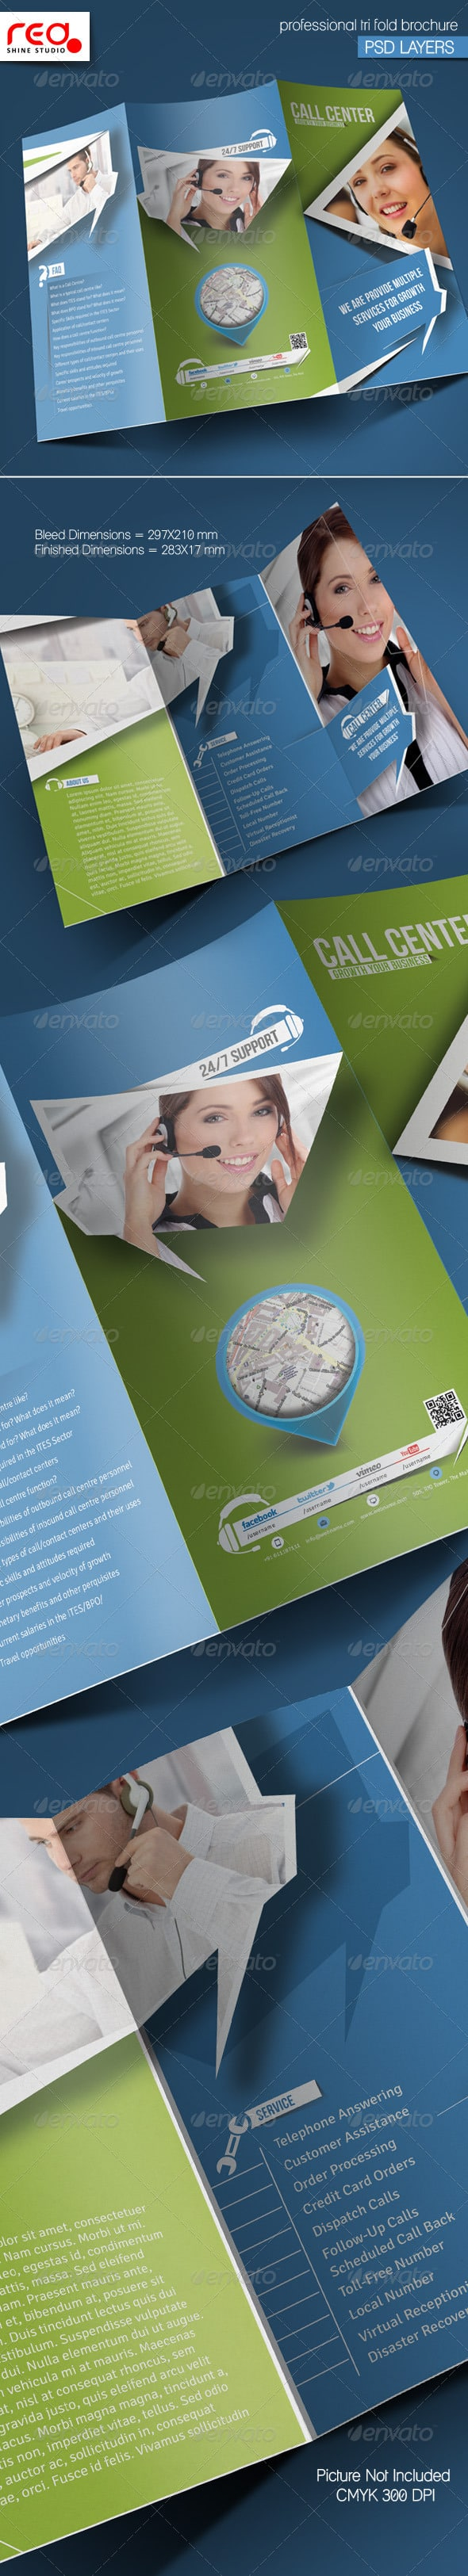 Customer Support Trifold Brochure Template